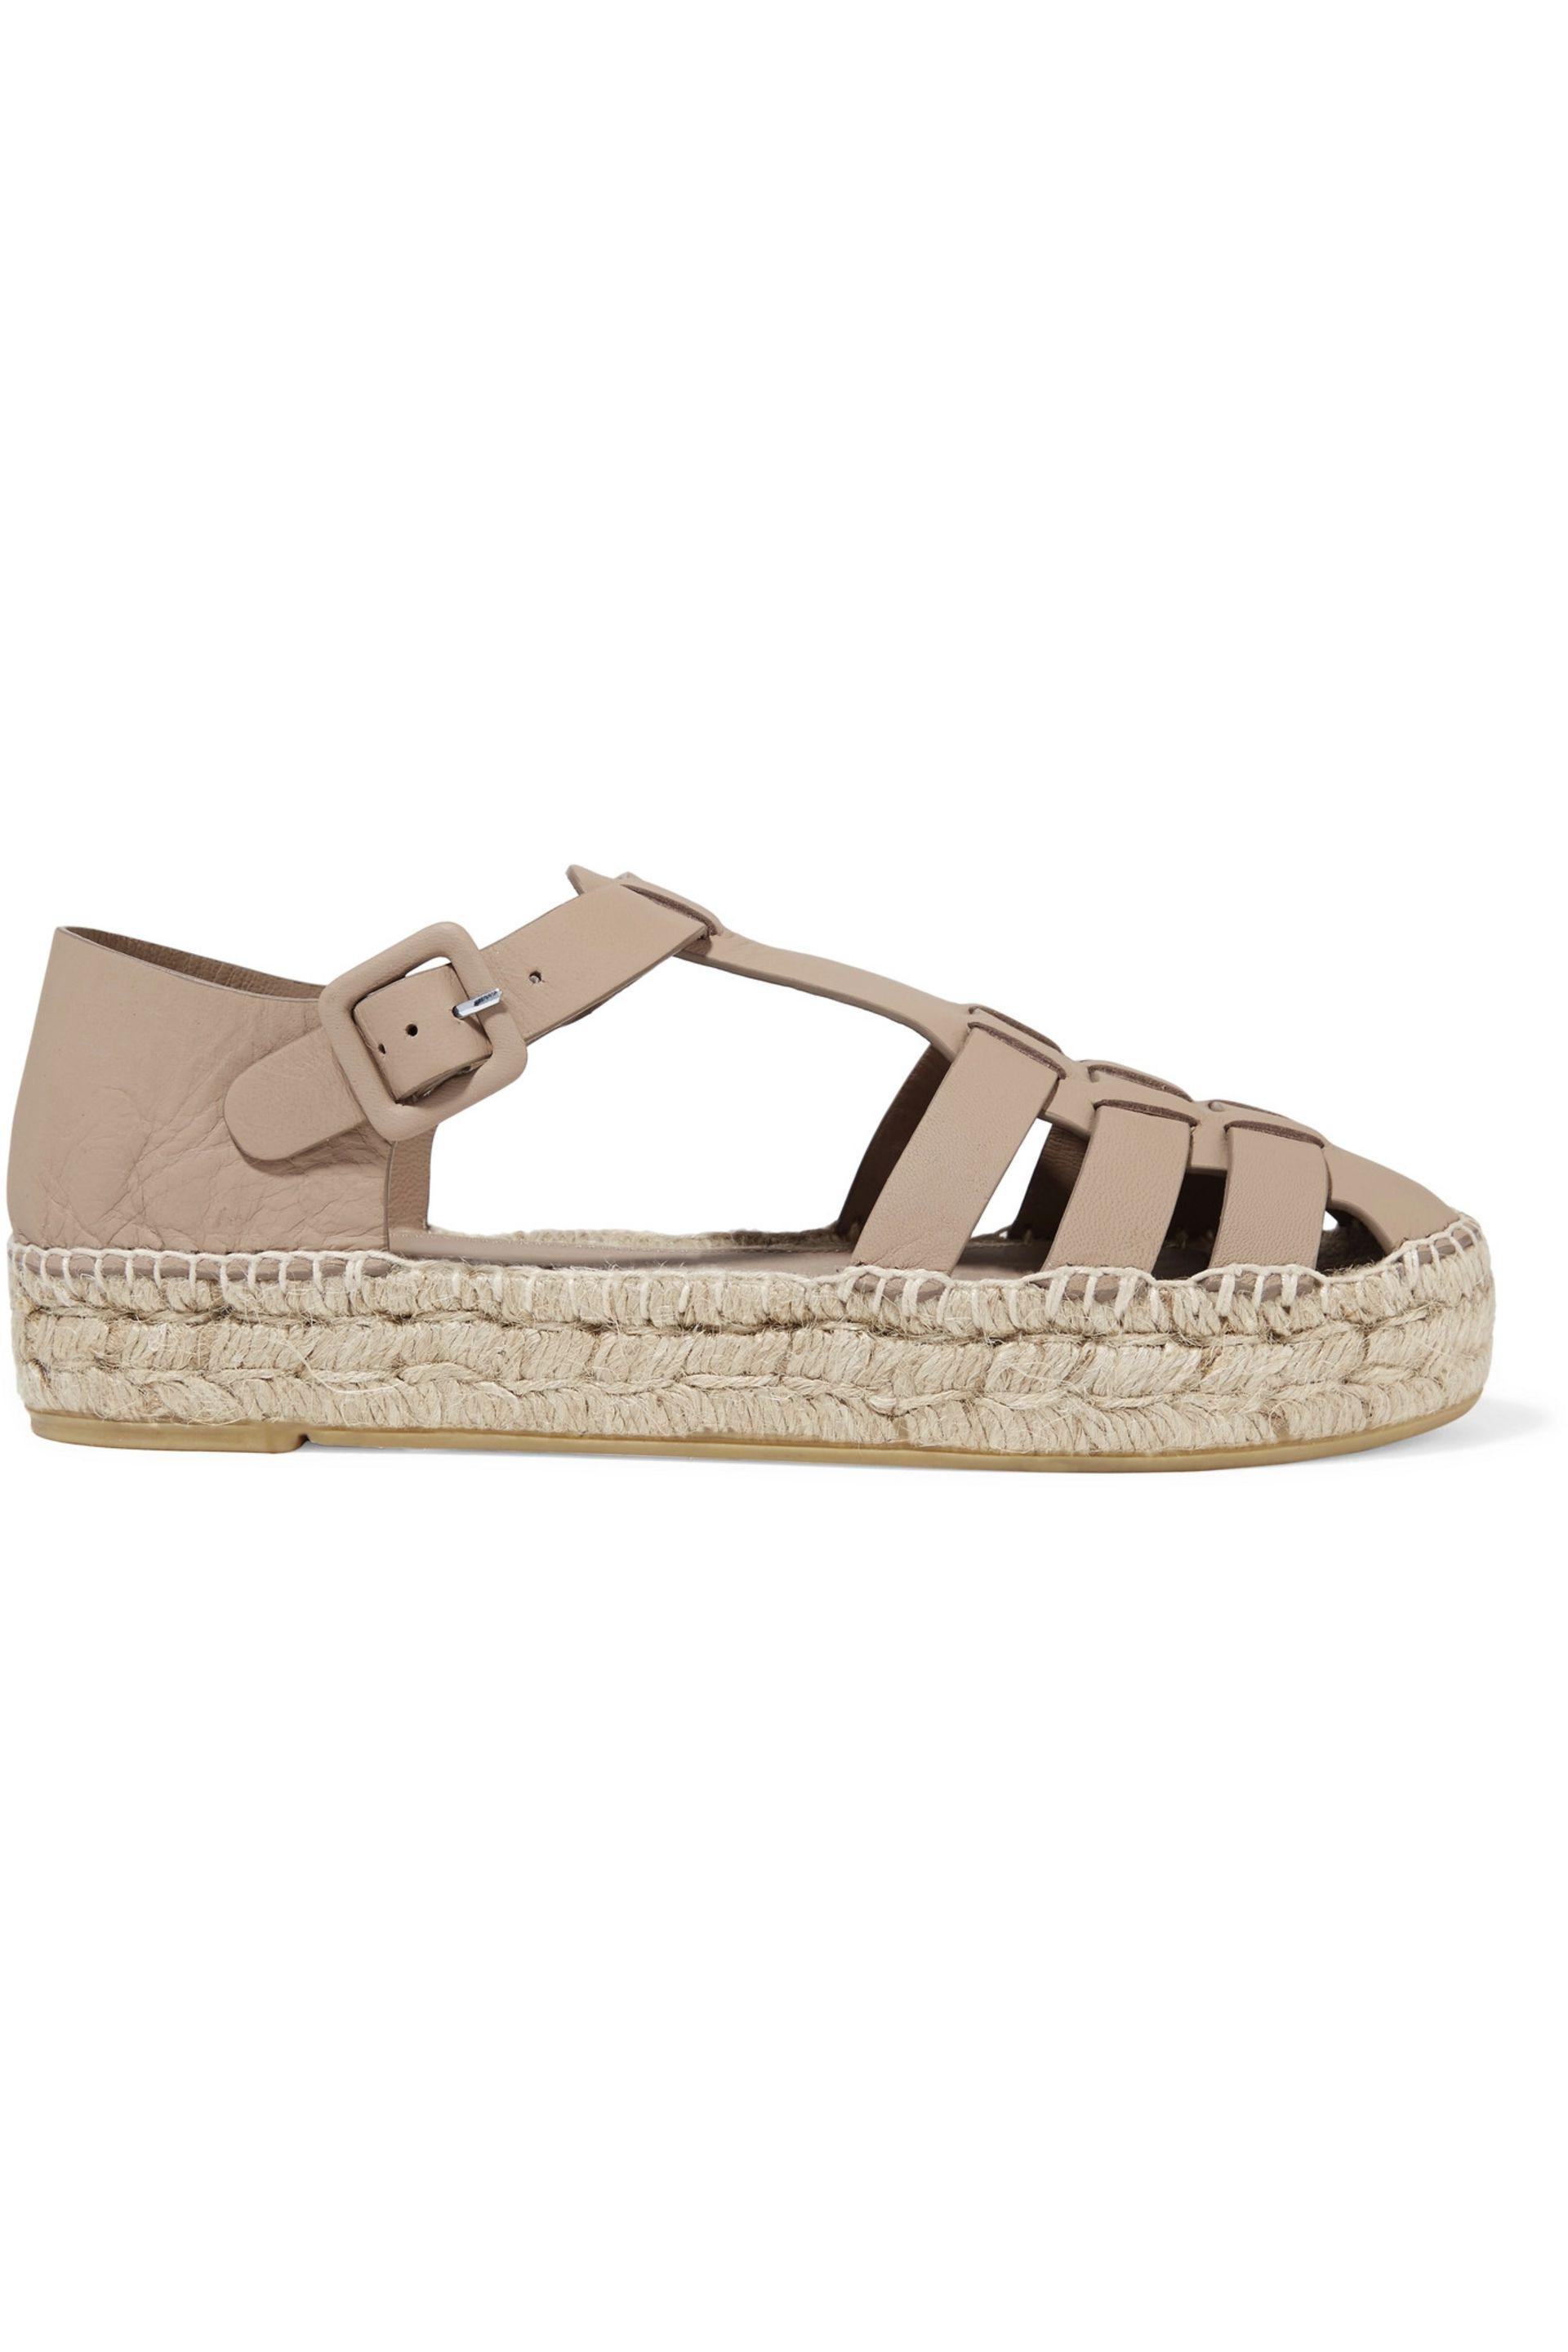 Paloma Barceló. Women's Irma Cutout Leather Espadrilles